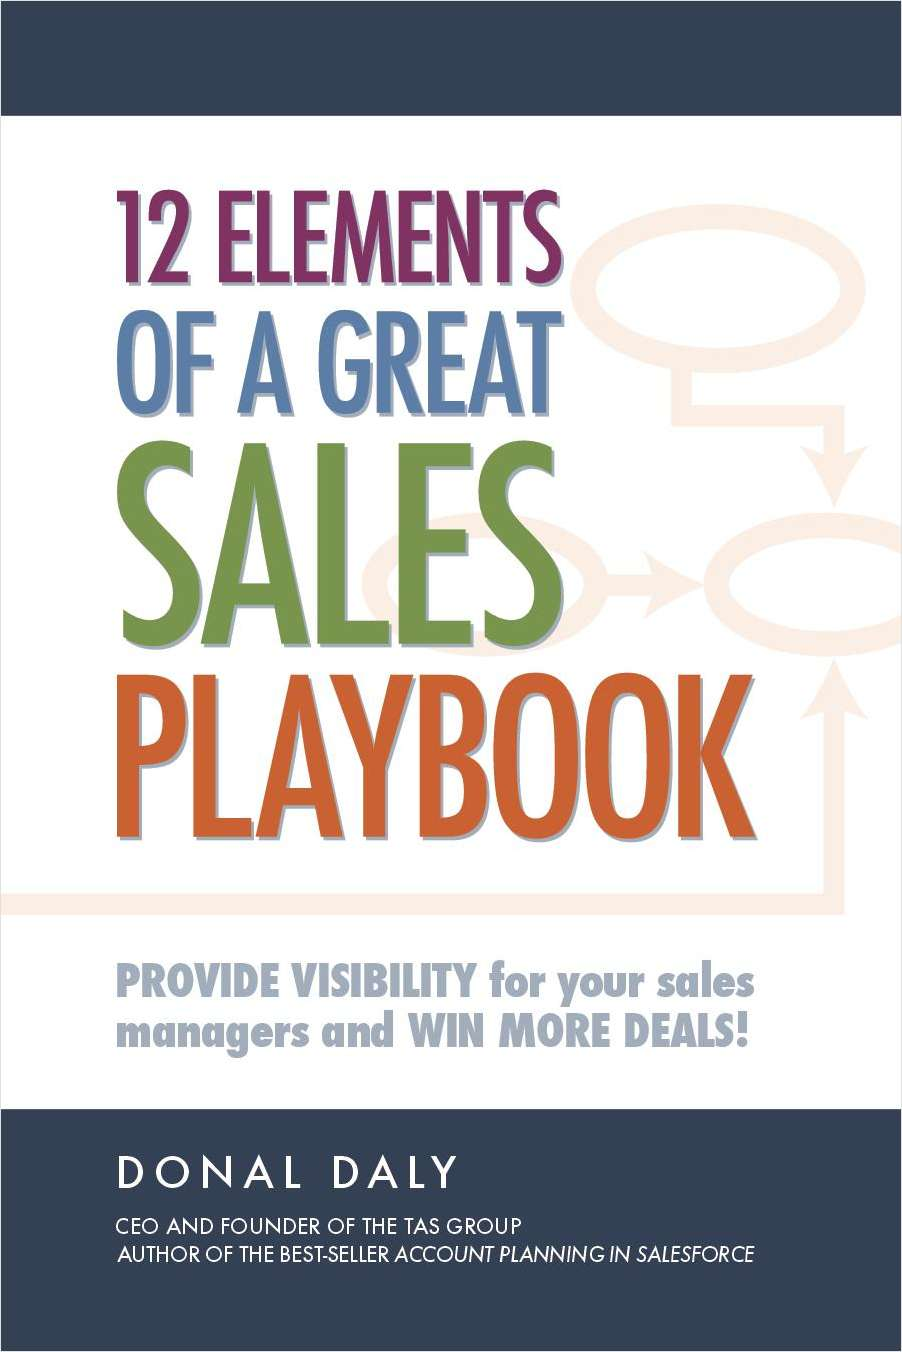 12 Elements of a Great Sales Playbook